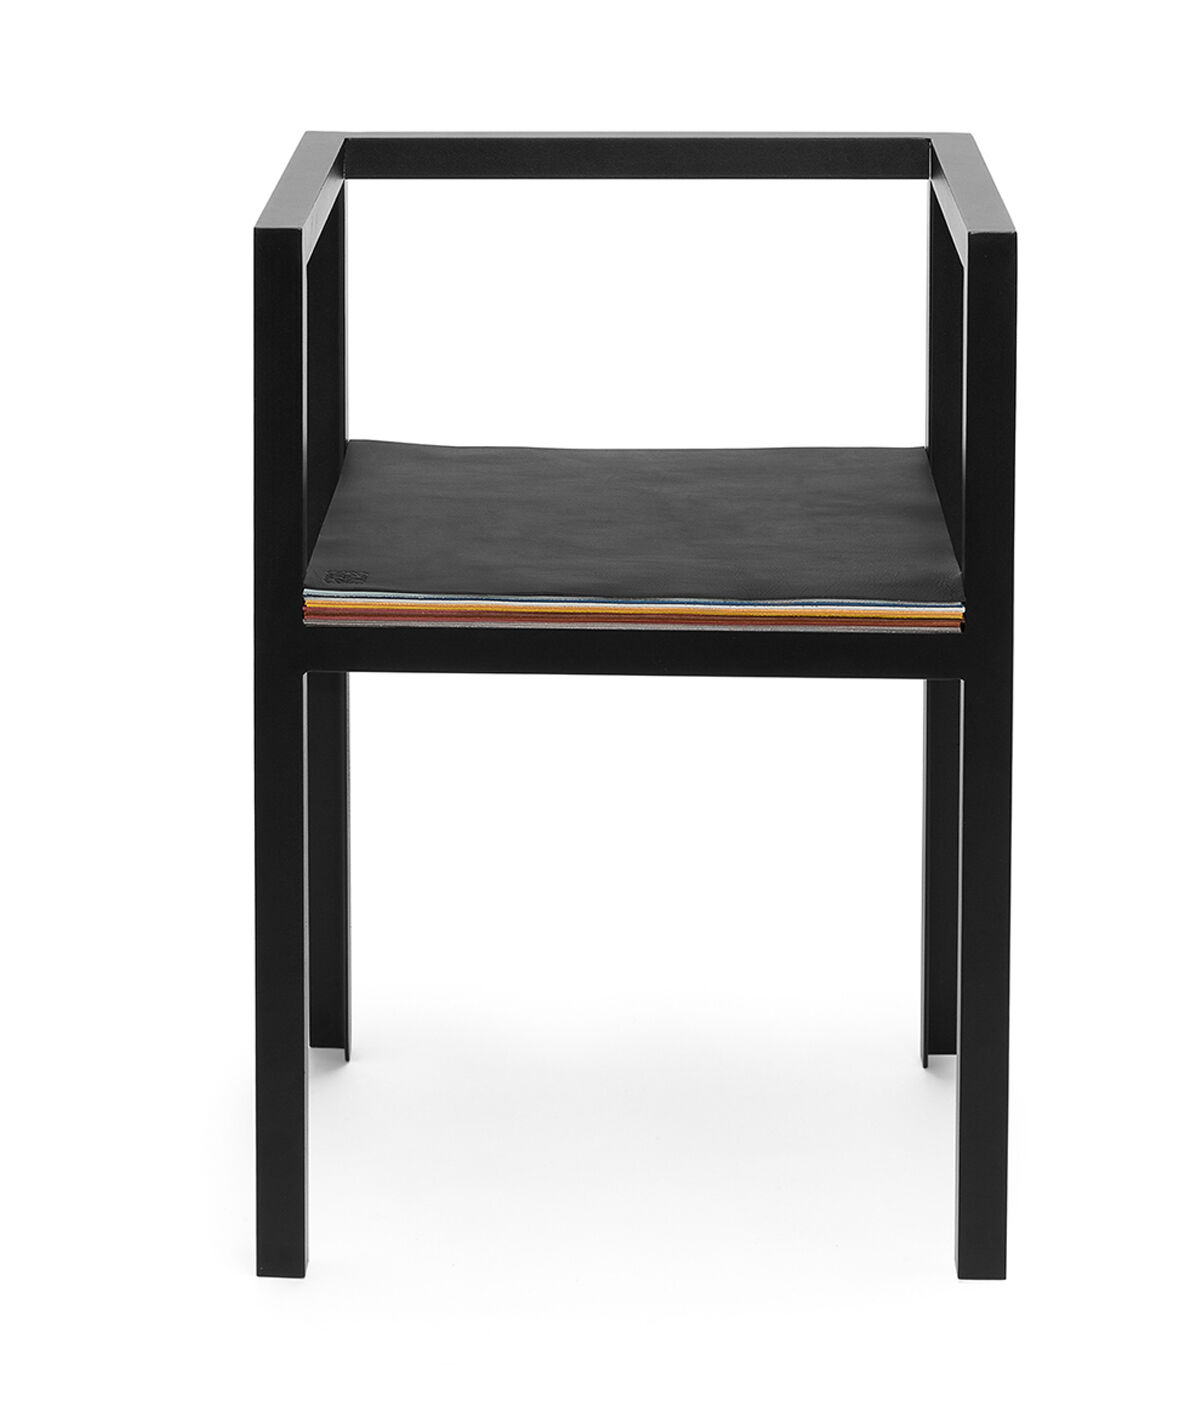 LOEWE Set Chair W/ Layers Of Leather 黑色/多色 all